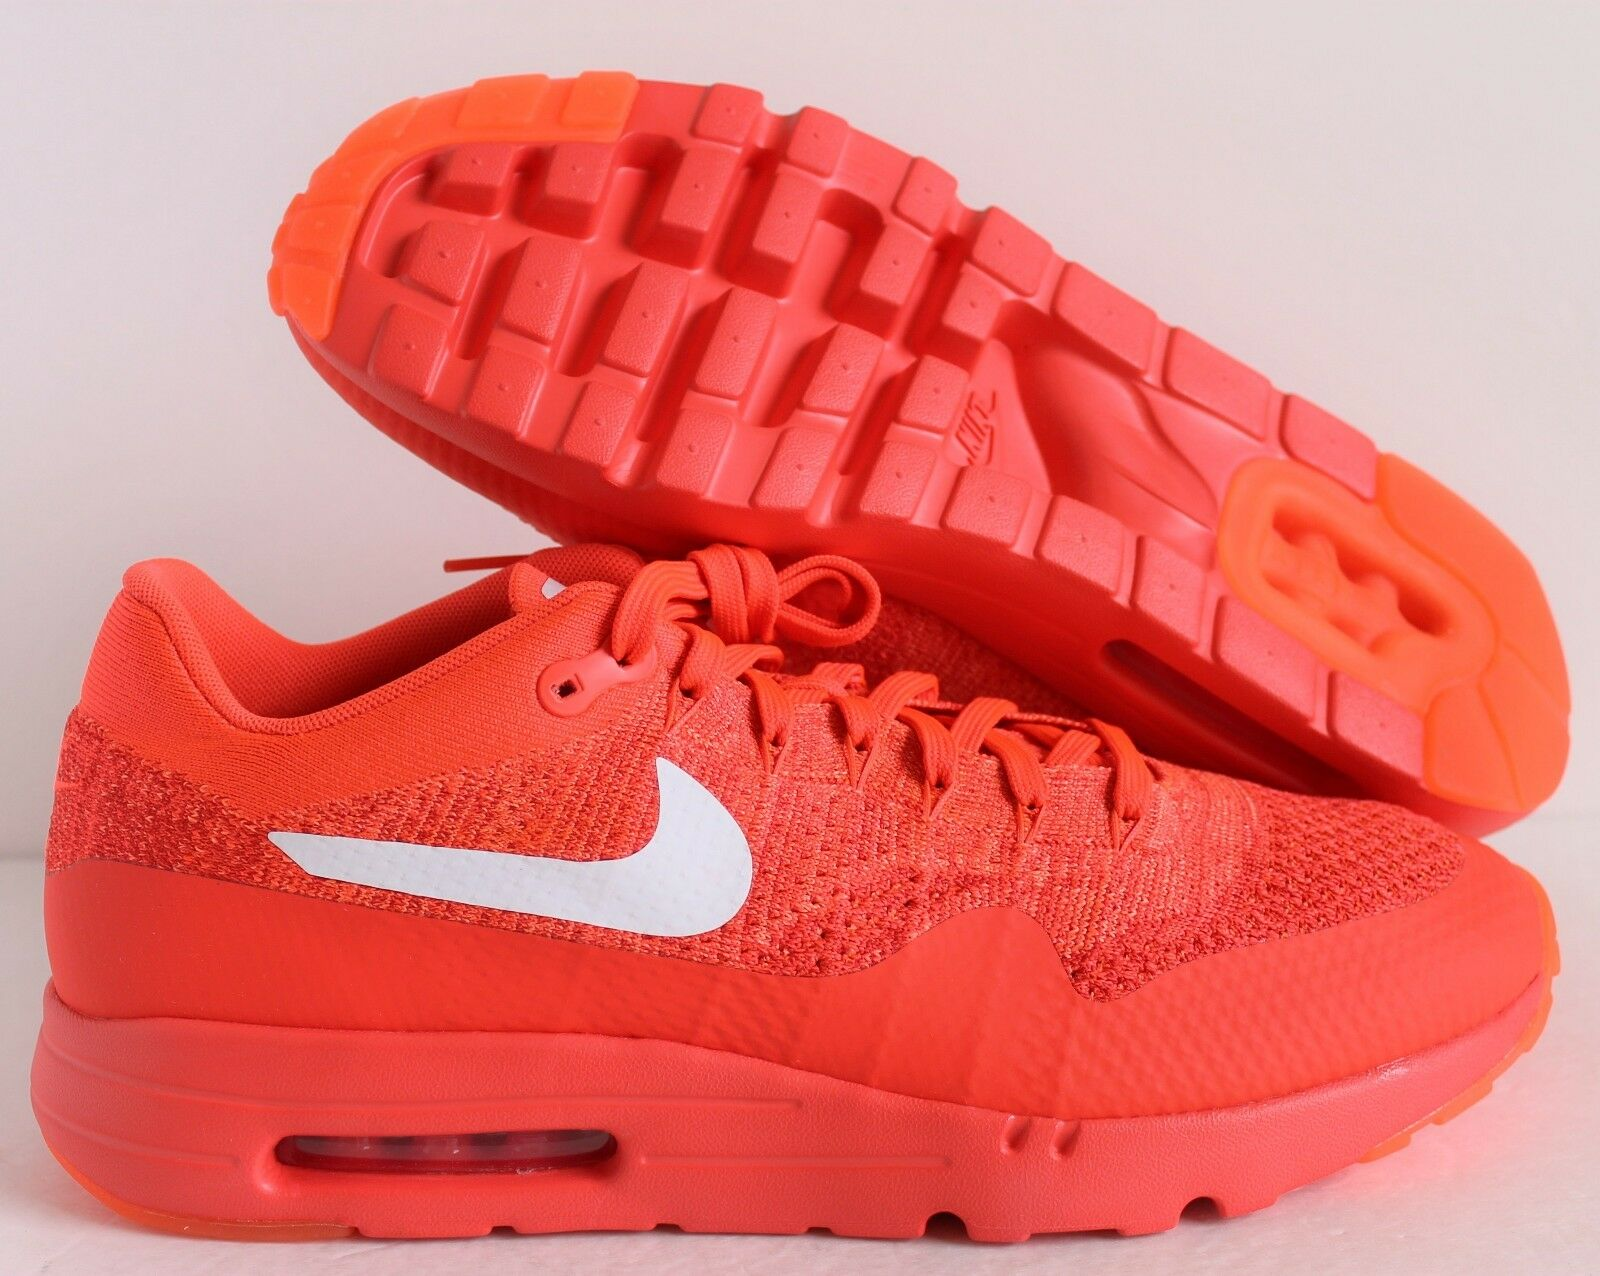 finest selection 425e4 db106 NIKE AIR MAX MAX MAX 1 ULTRA FLYKNIT BRIGHT CRIMSON-blanc-rouge SZ 13   843384-601  e57fb8